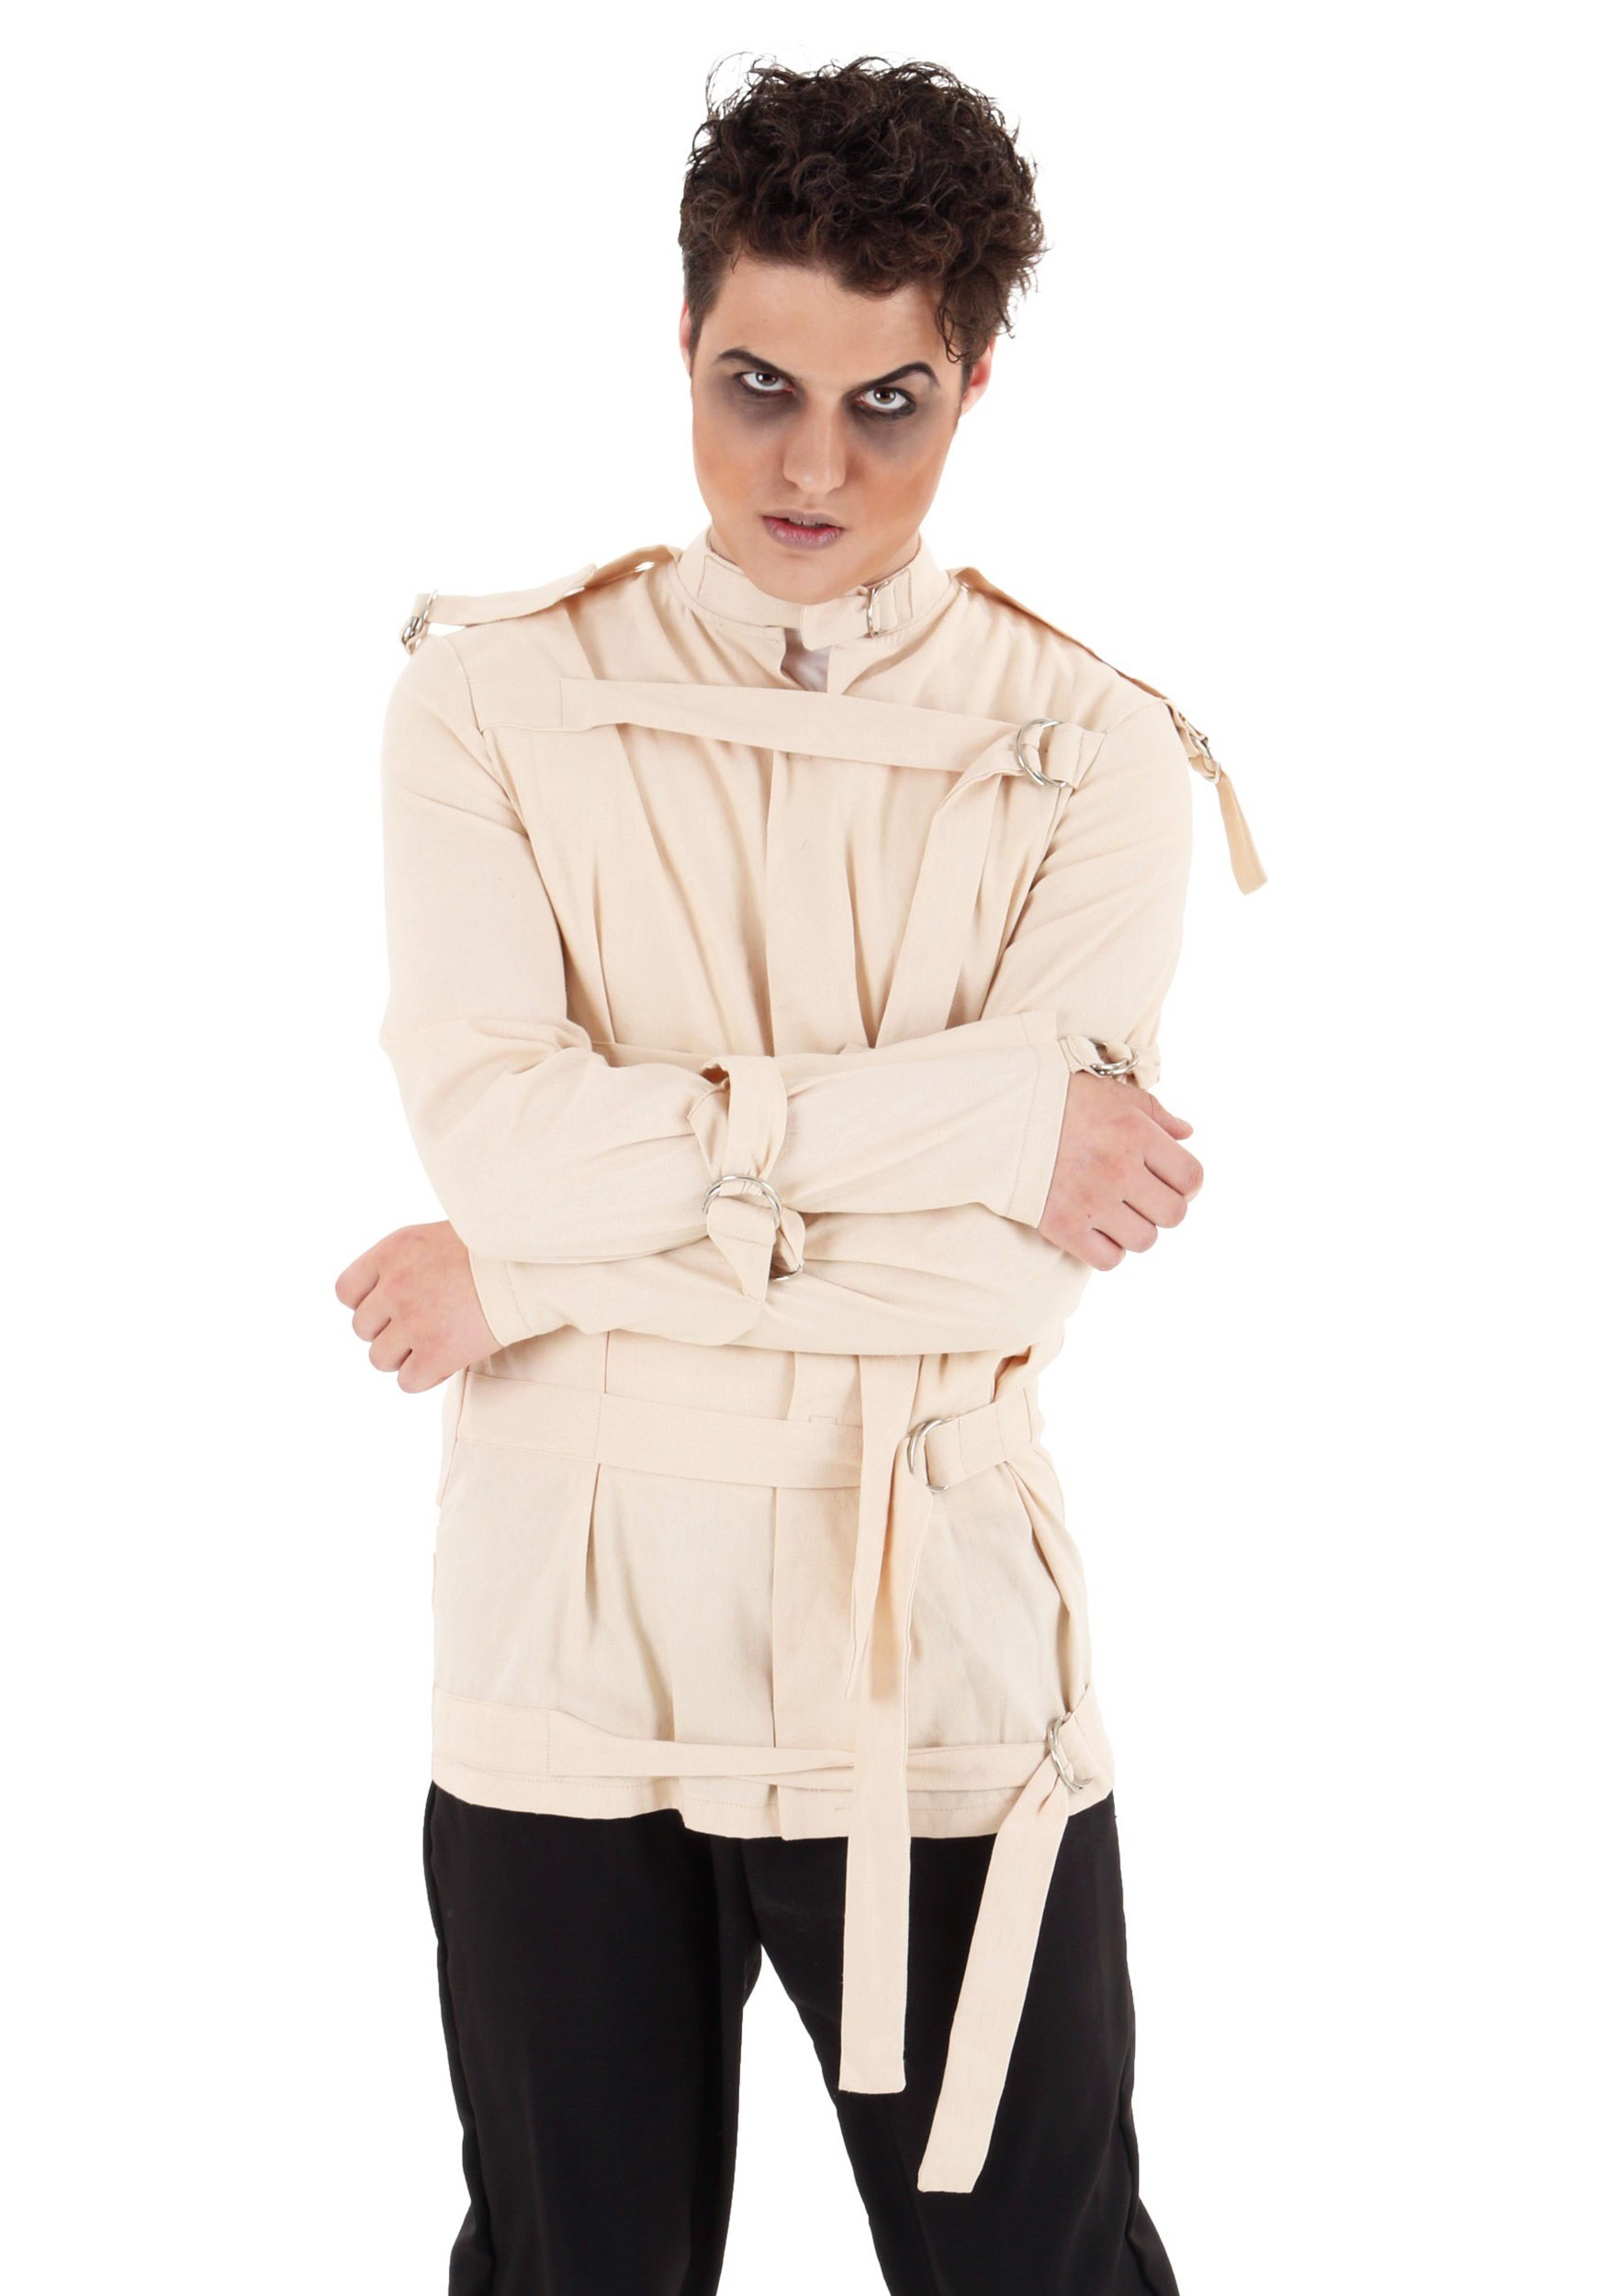 Asylum Straight Jacket Costume For Adults